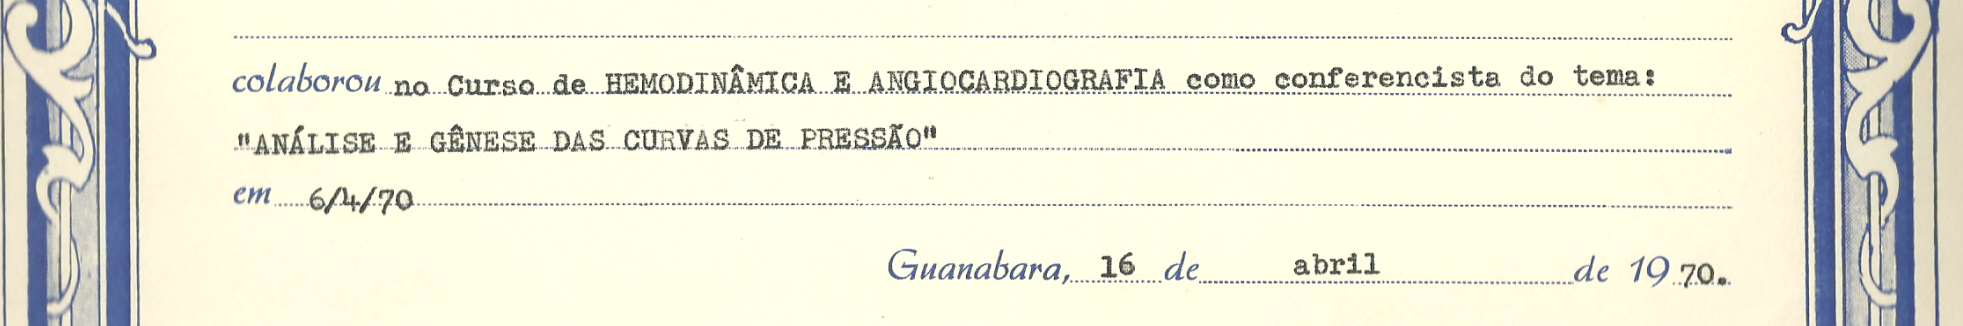 1970:Certificado - Estado da Guanabara Instituto Estadual de